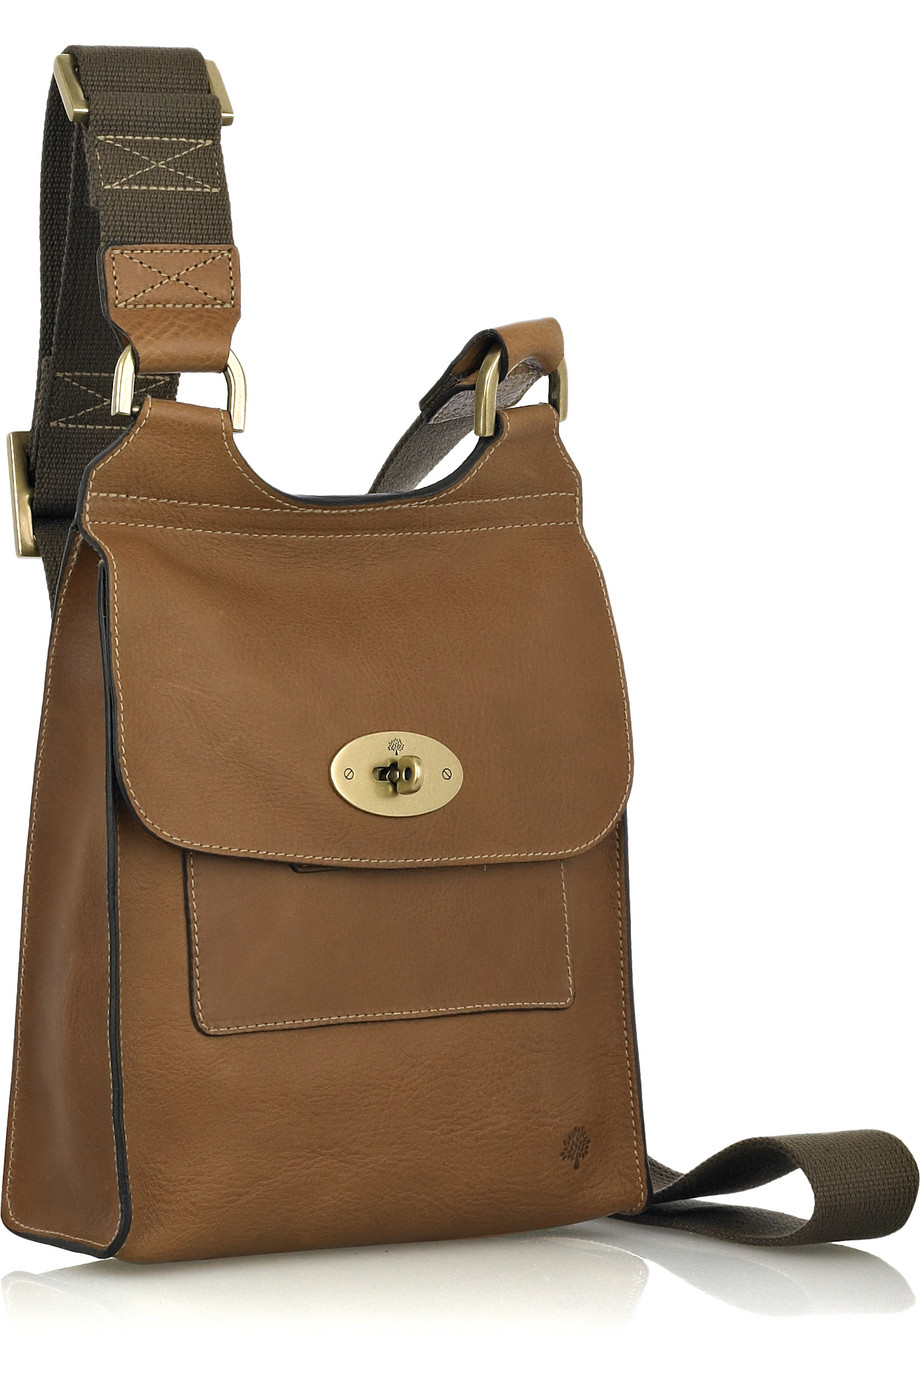 ... wholesale mulberry antony leather cross body bag in brown lyst 6199e  32b74 5608ca1066f62